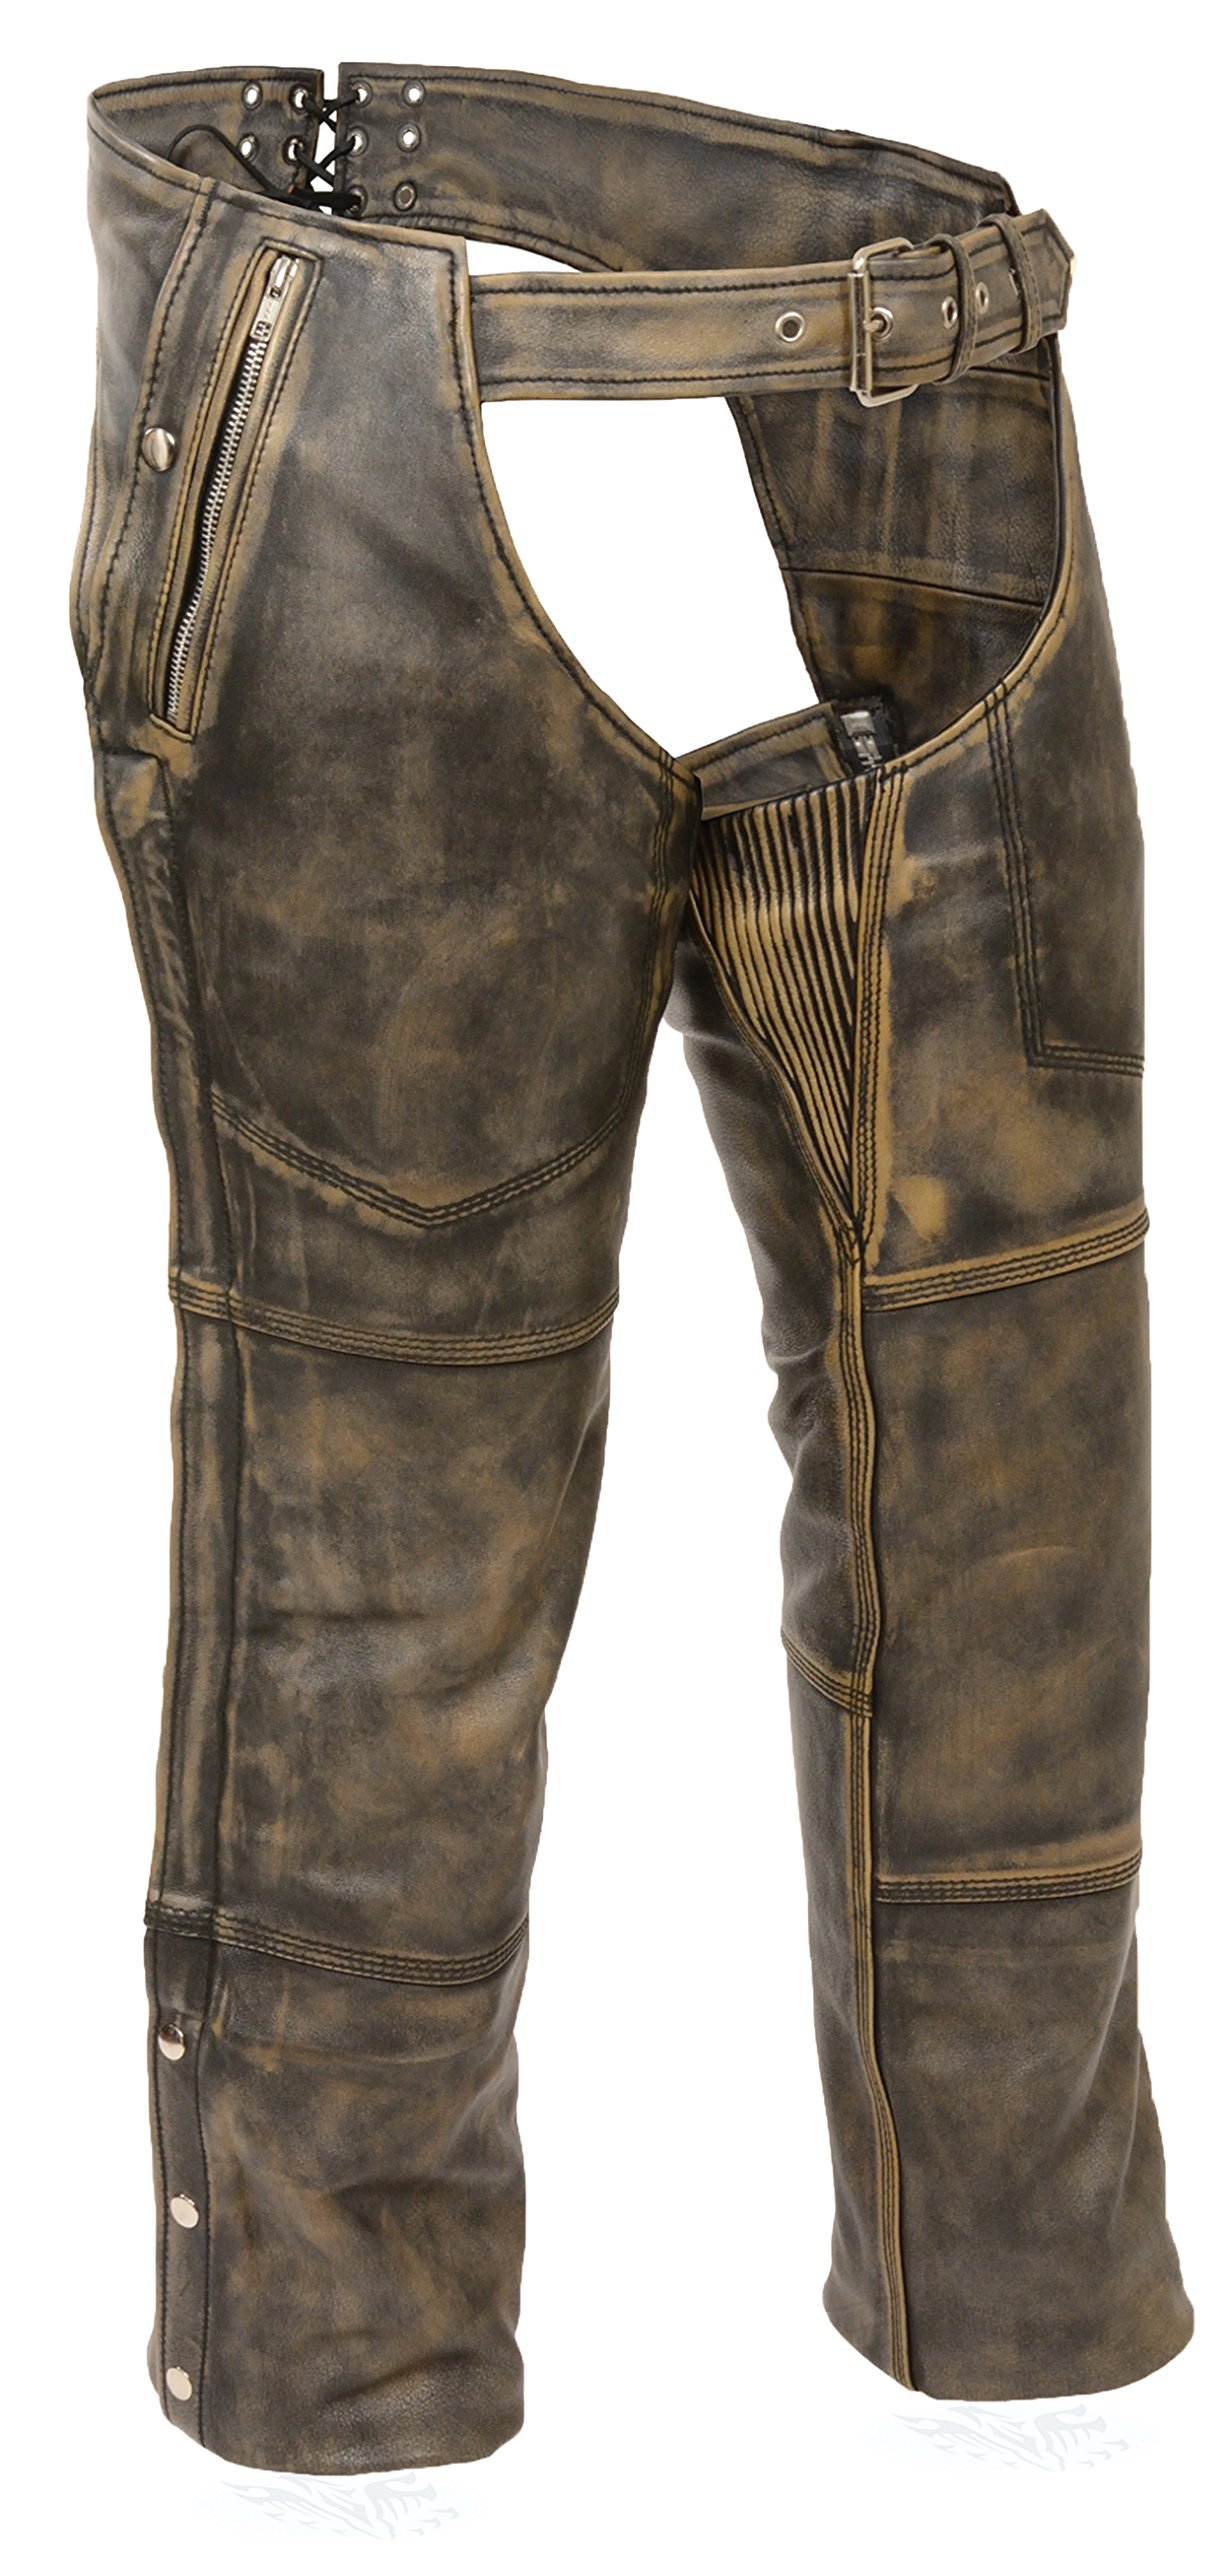 BROWN DISTRESSED LEATHER BIKER CHAPS 5X